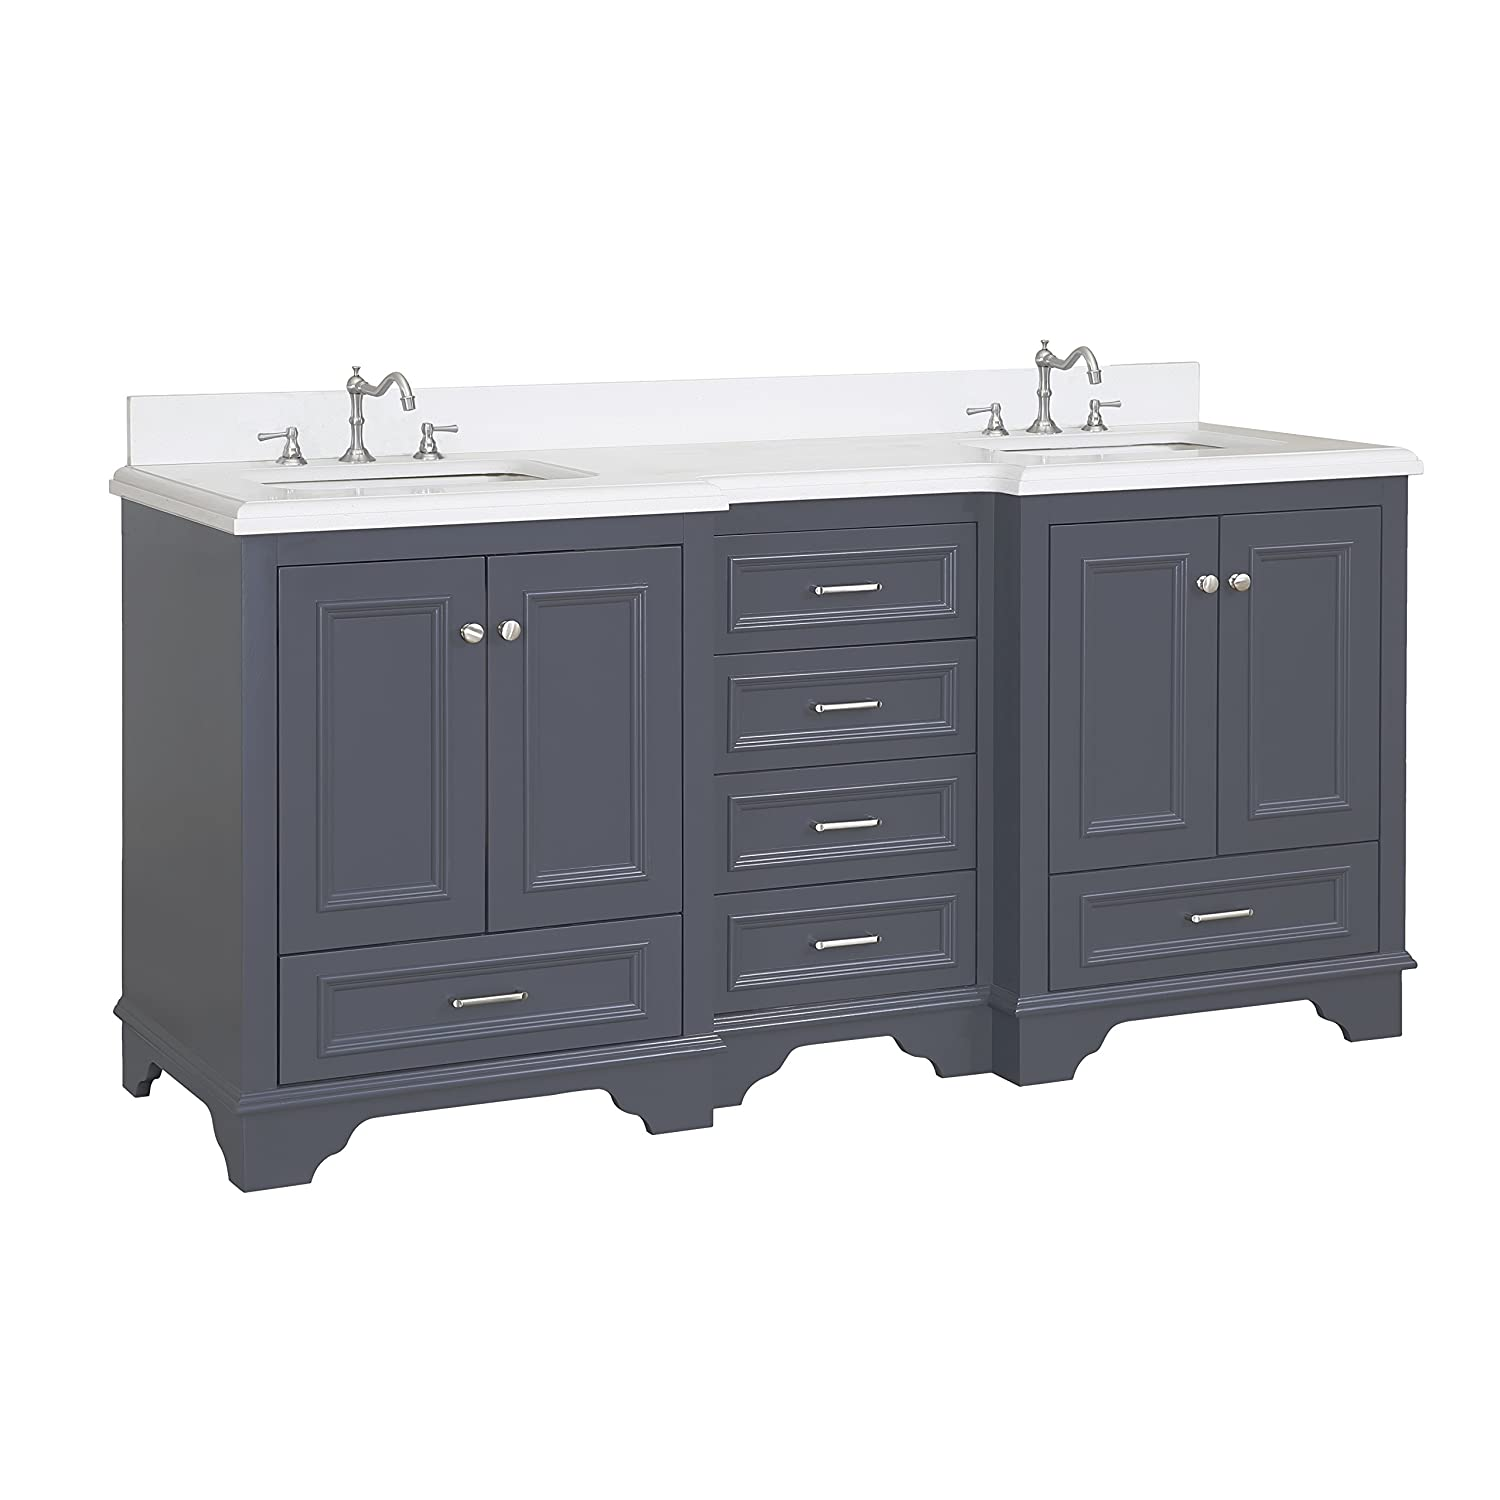 Nantucket 72-inch Bathroom Vanity (Quartz/Charcoal Gray): Includes Charcoal  Gray Cabinet with Soft Close Drawers, Quartz Countertop, and Two Ceramic ...